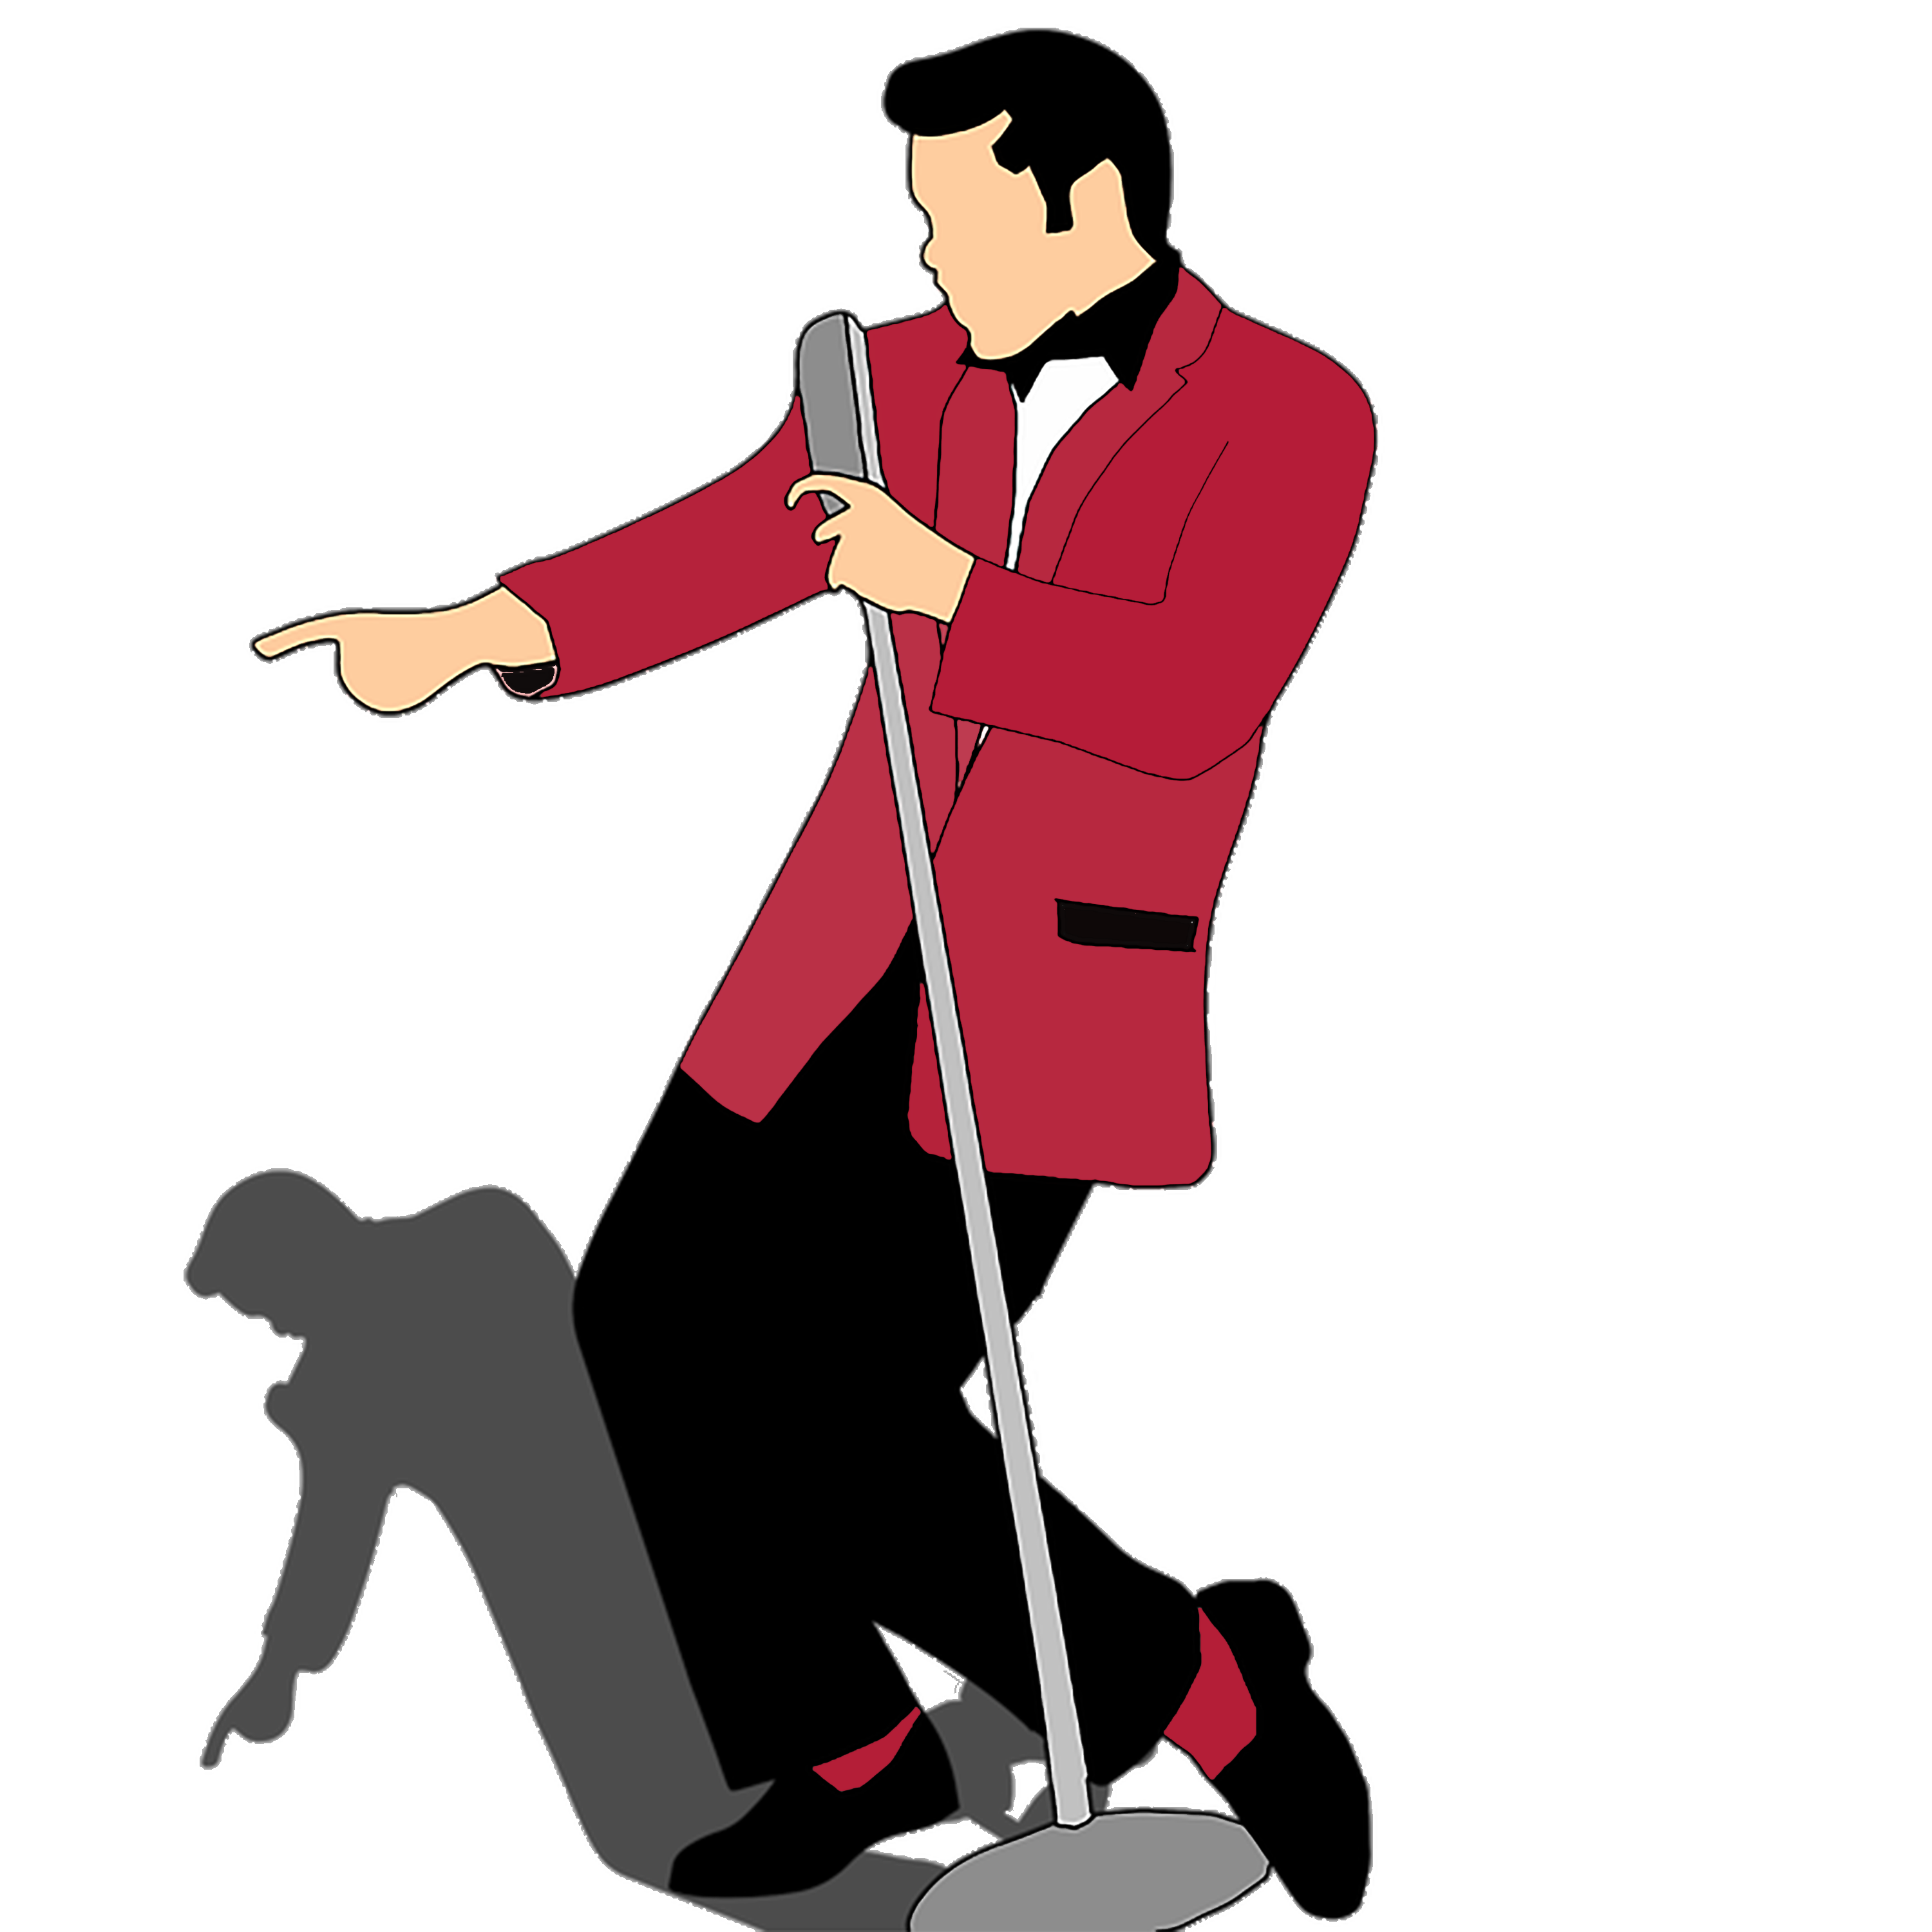 Singers get jail time. Egyptian clipart number system